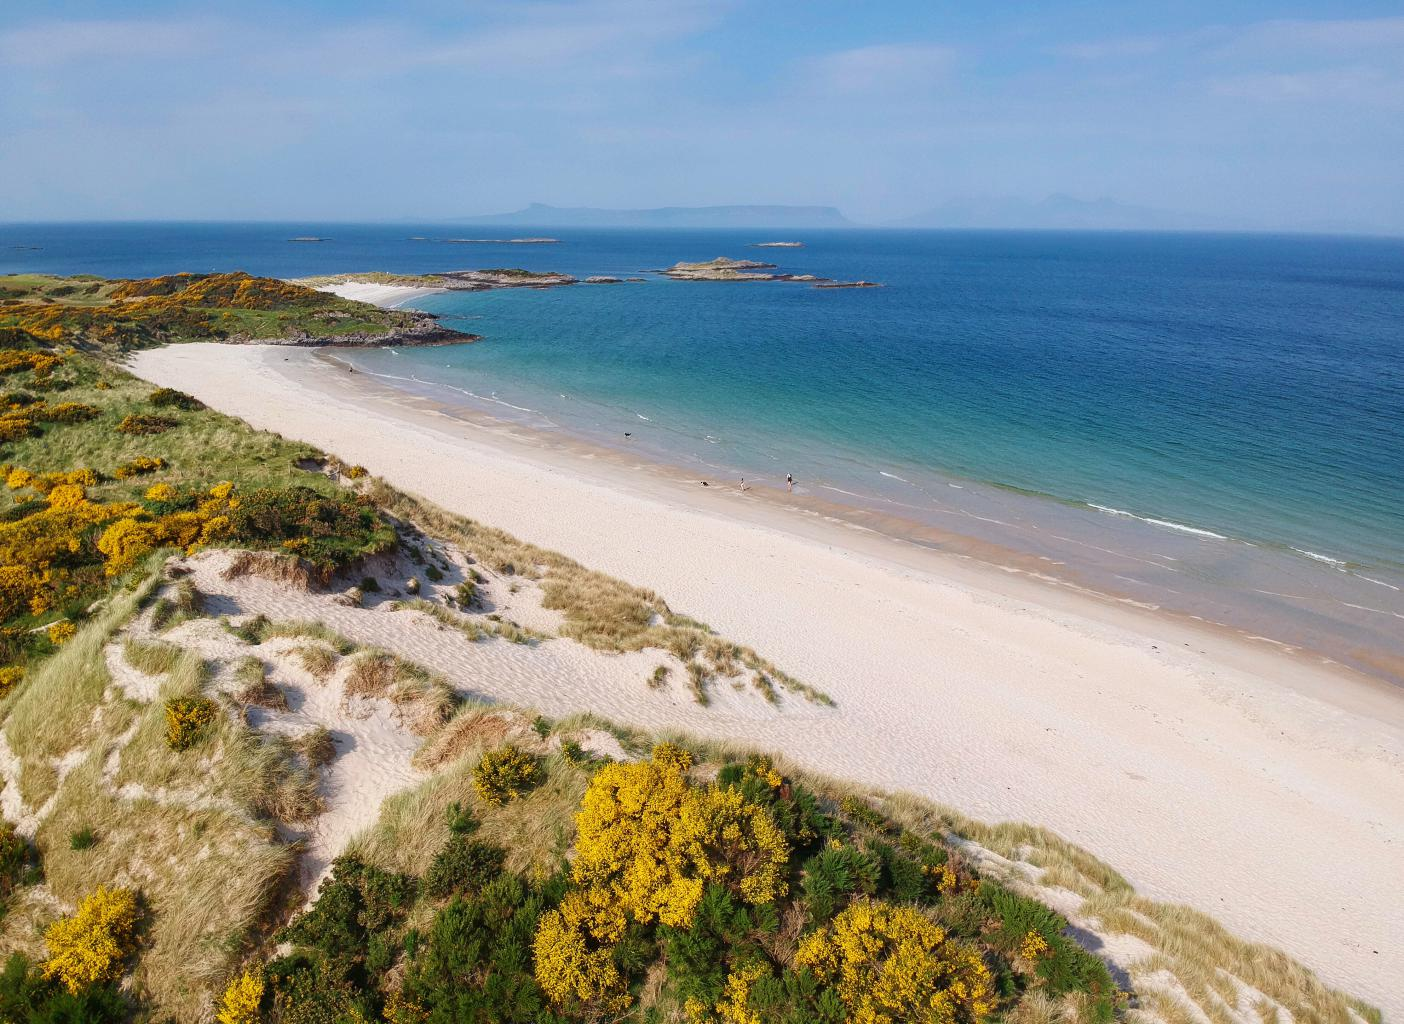 EXPLORE THE AREA'S UNSPOILT BEACHES